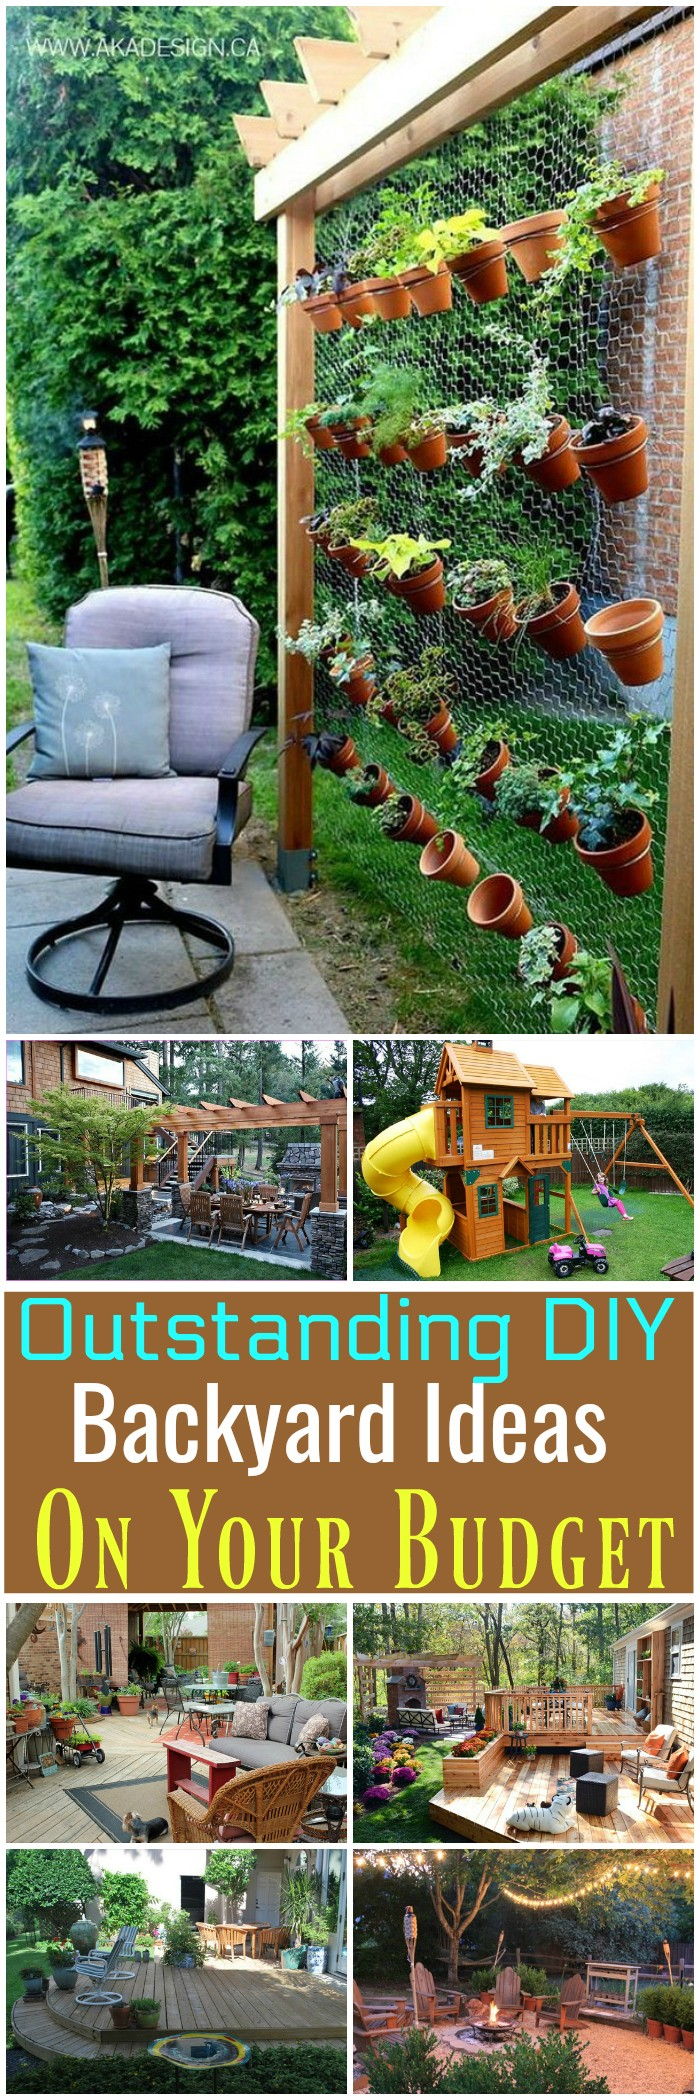 12 Great Ideas For A Modest Backyard: 12 Outstanding DIY Backyard Ideas On Your Budget • DIY